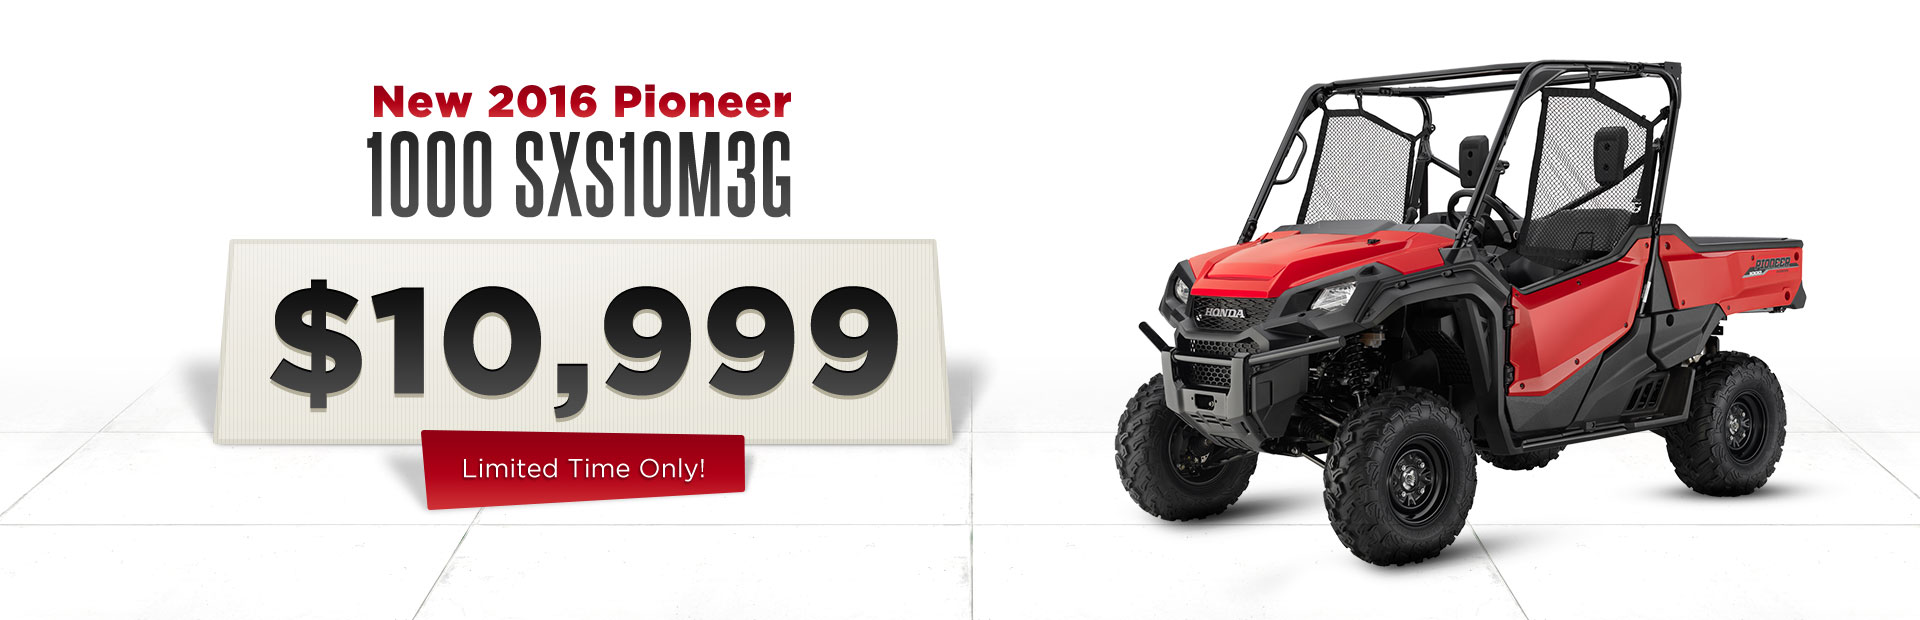 Get the new 2016 Honda Pioneer 1000 SXS1OM3G for just $10,999 for a limited time only!